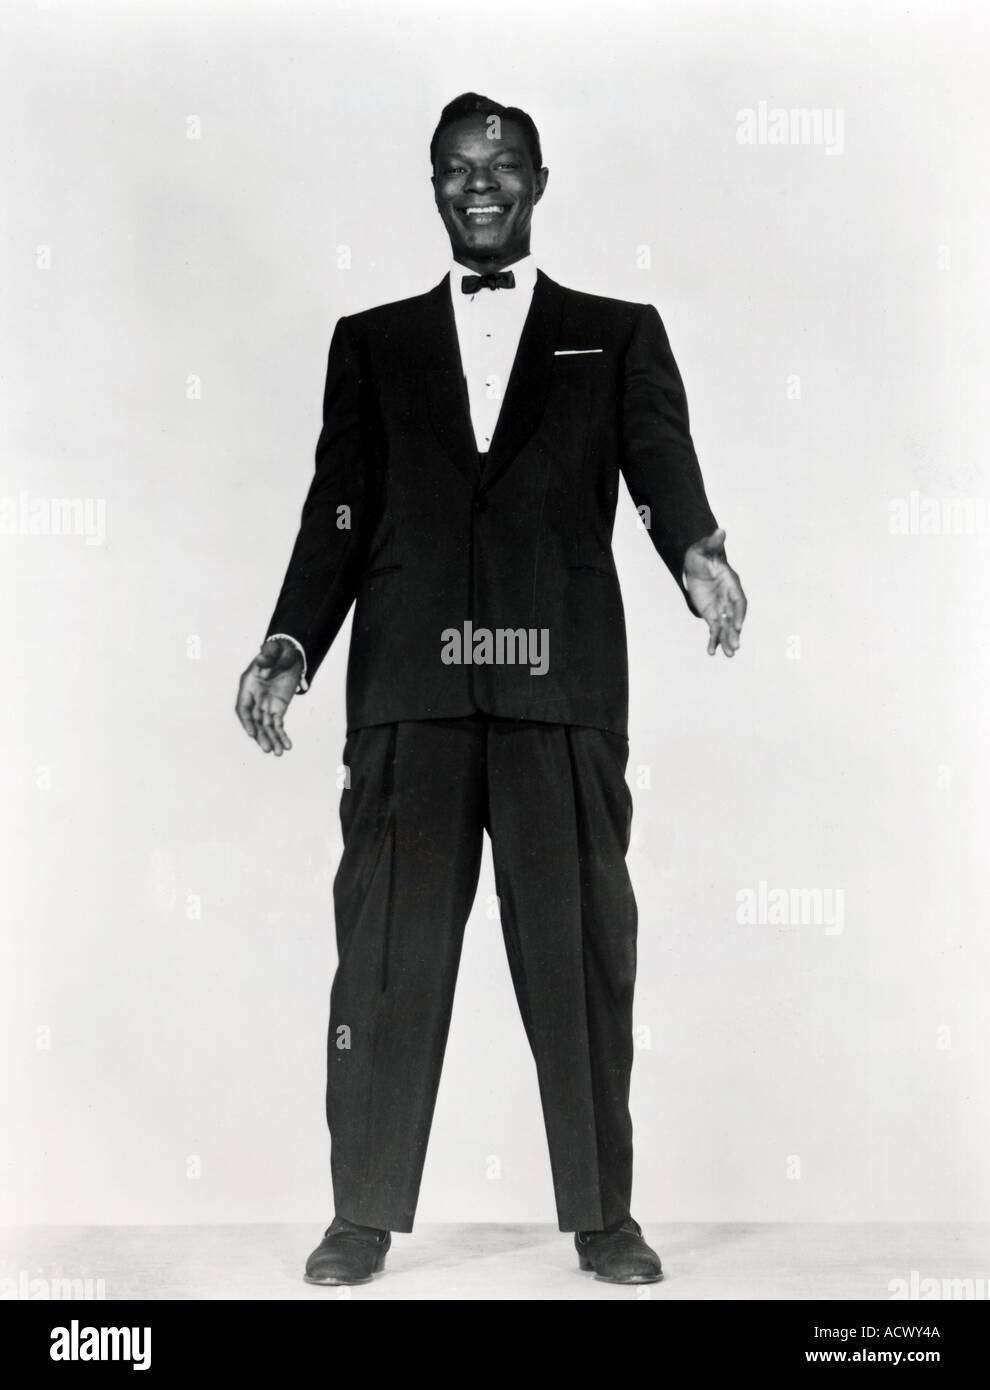 nat king cole singles 1964